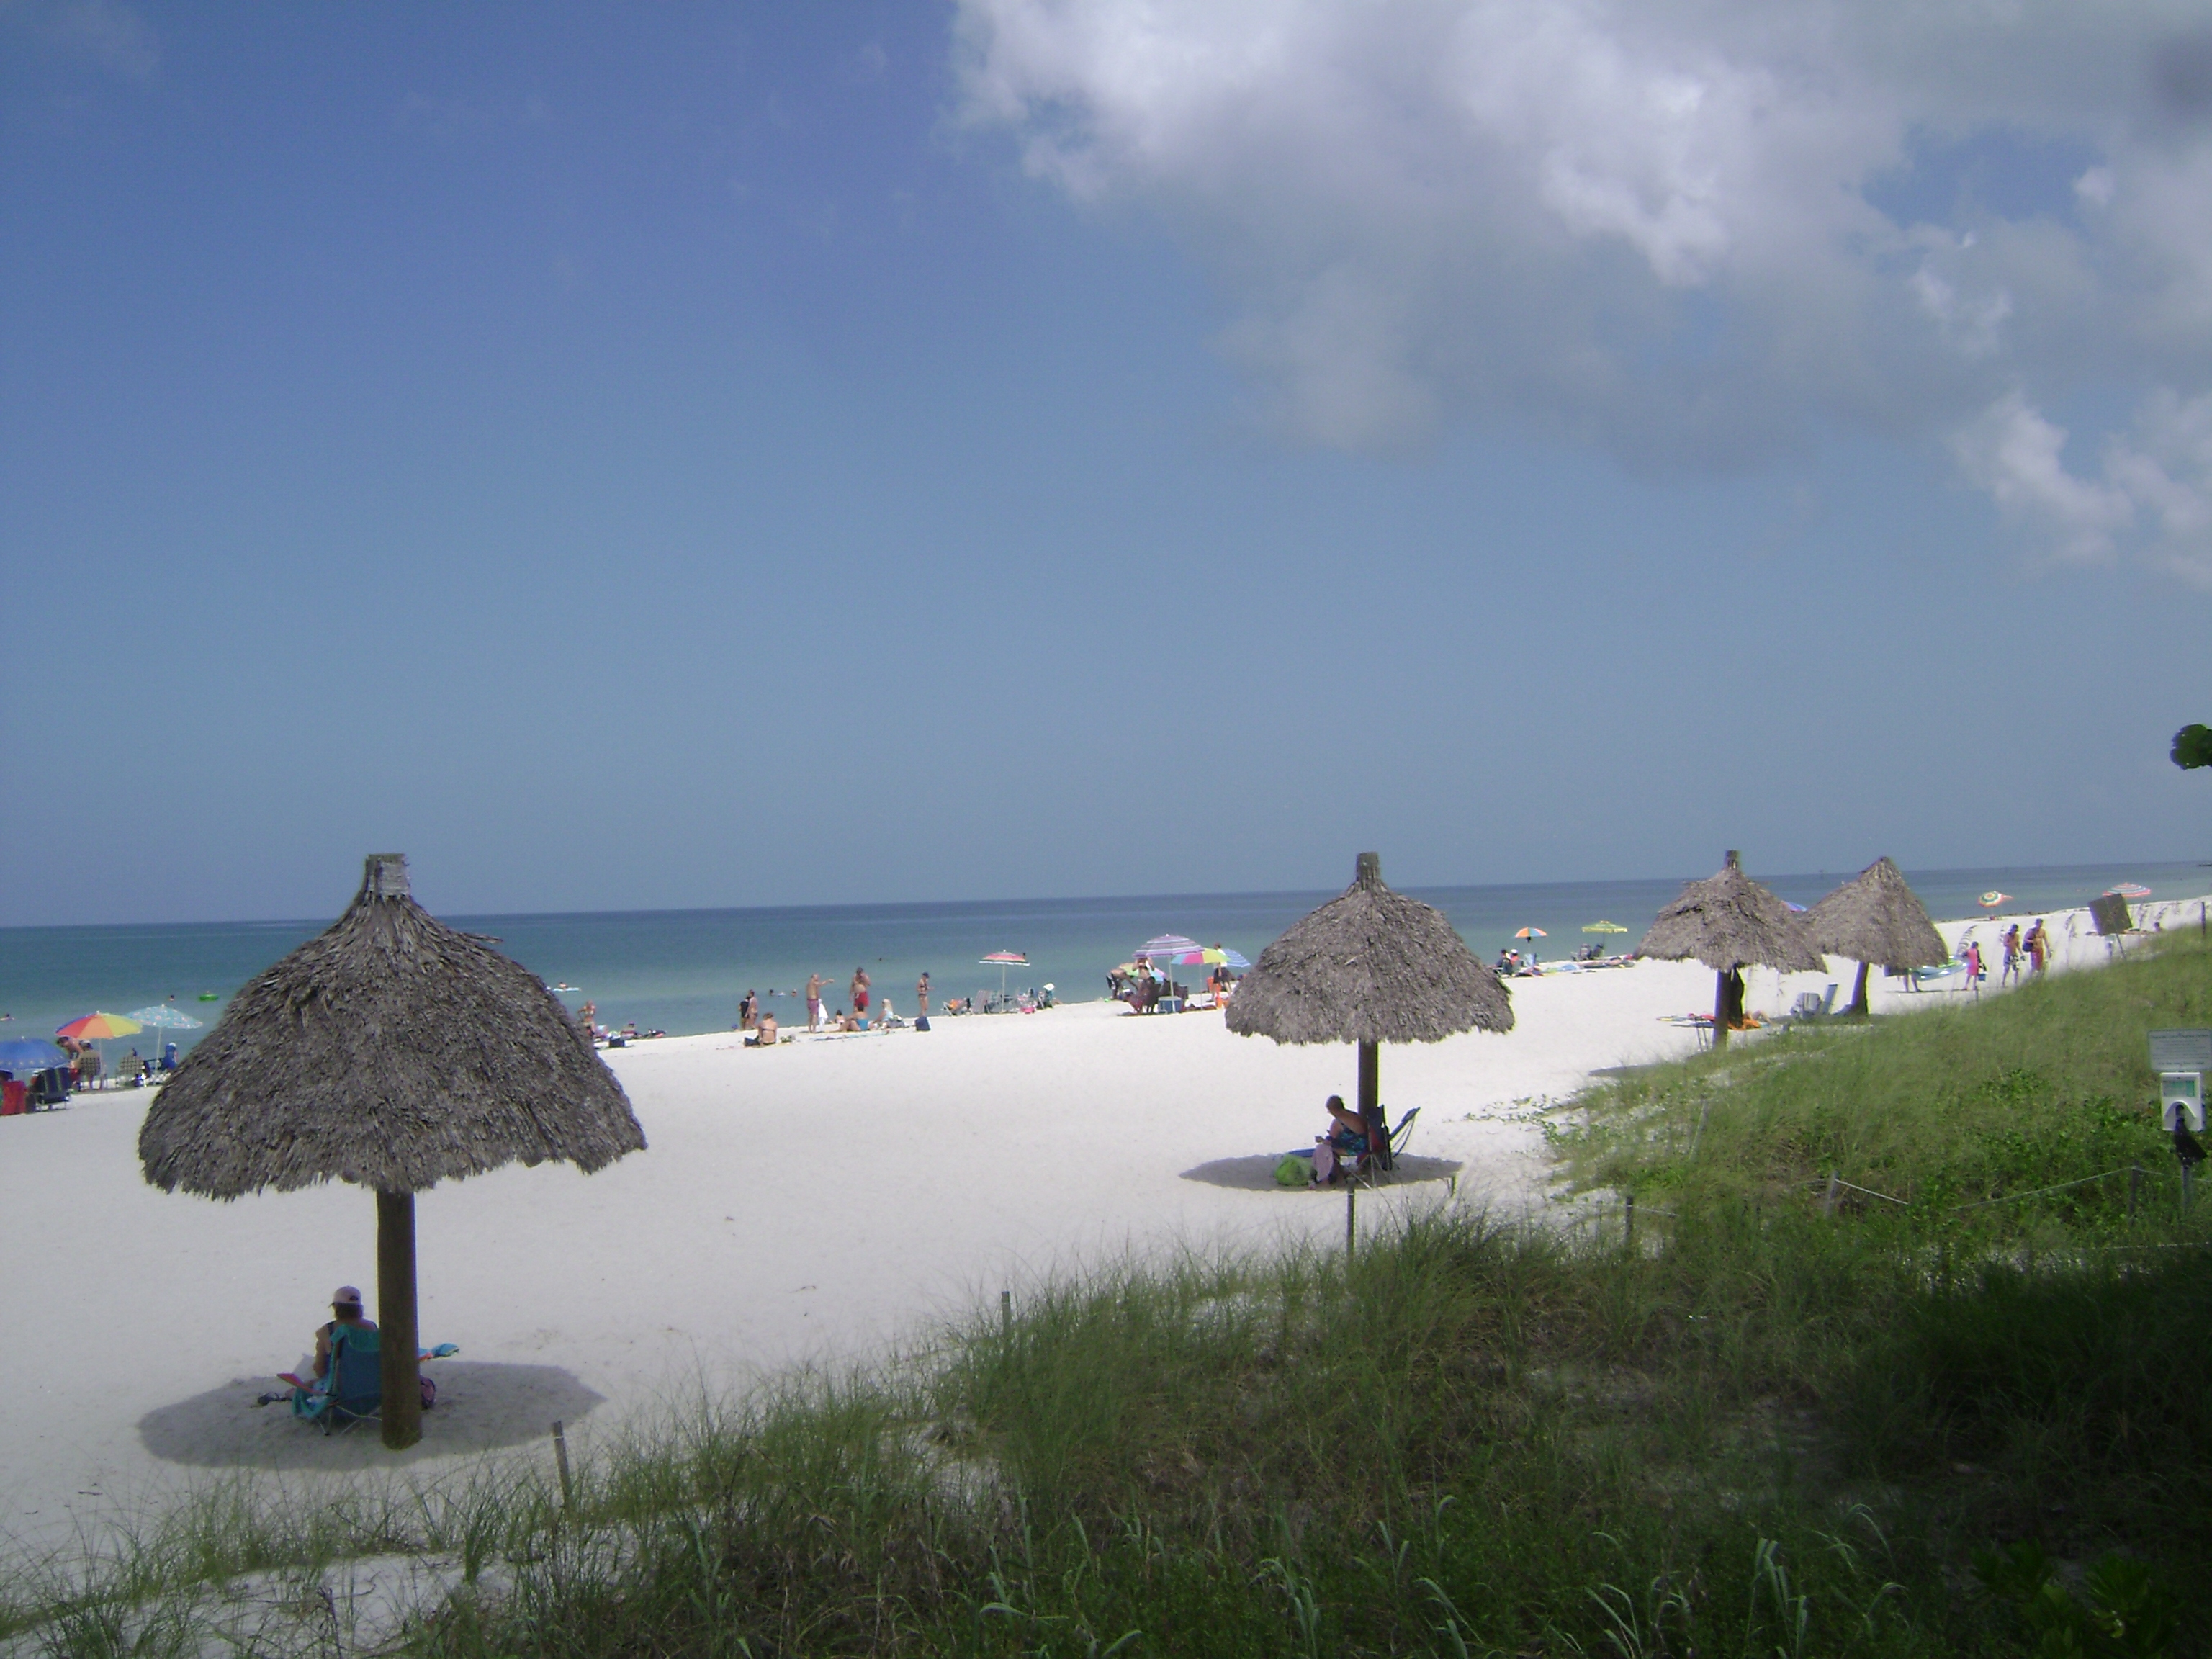 Beach at Coquina Sands in Naples, Florida.